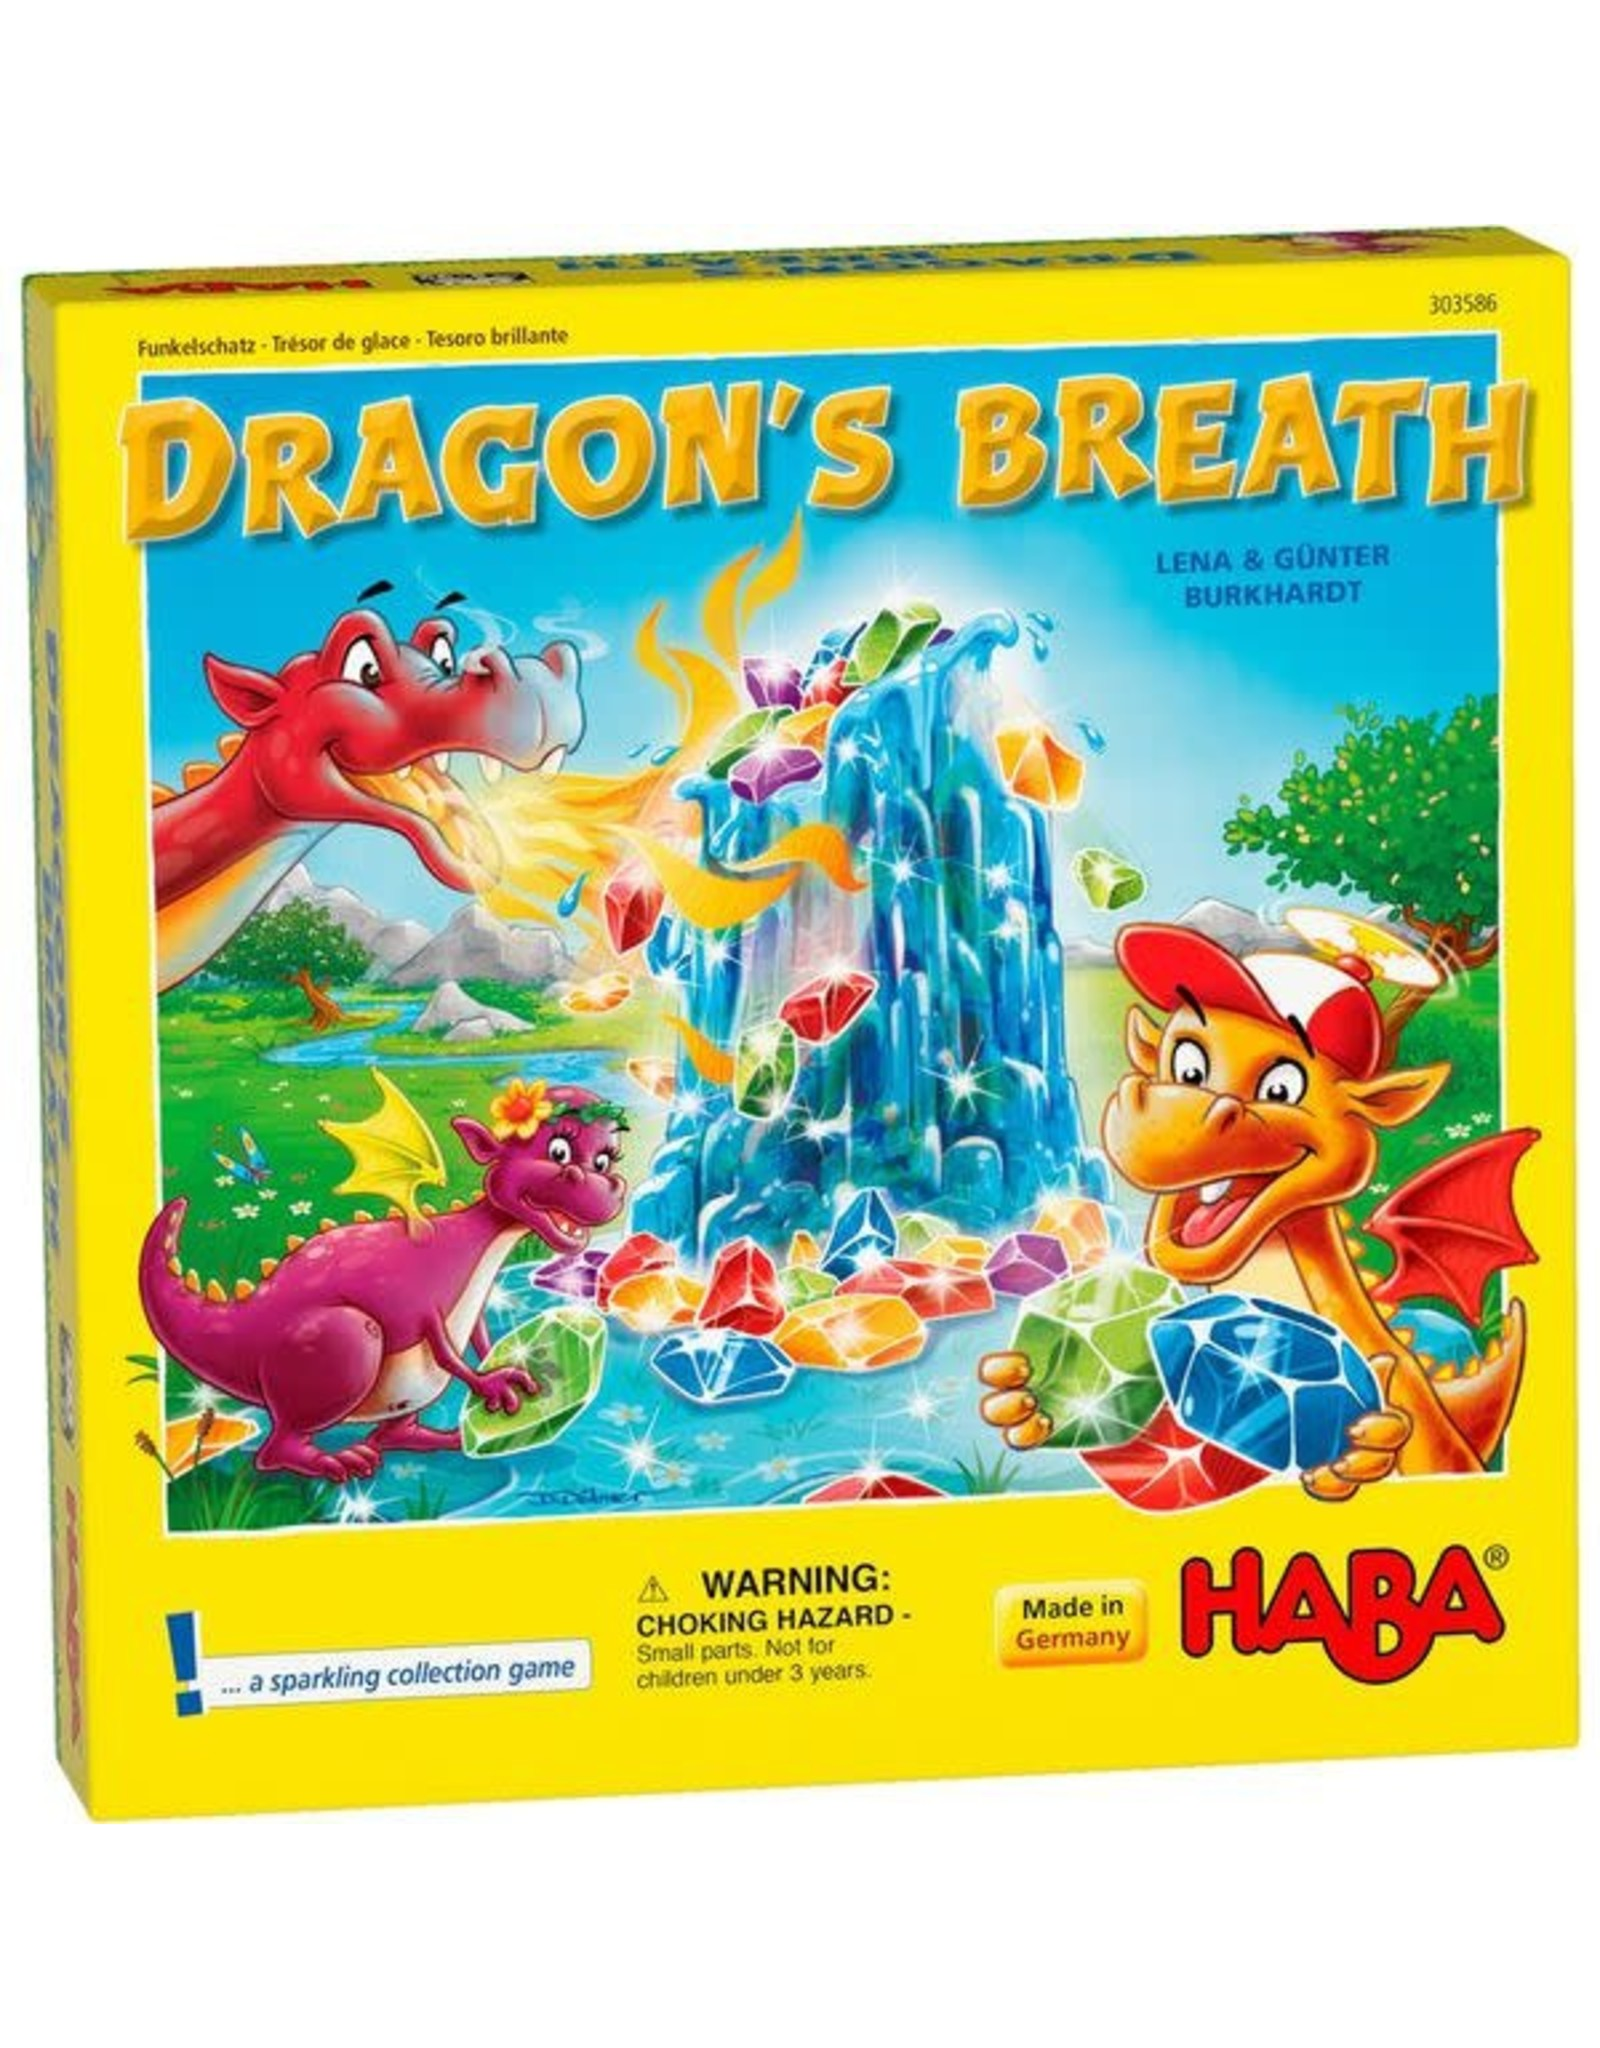 HABA GAMES DRAGON'S BREATH